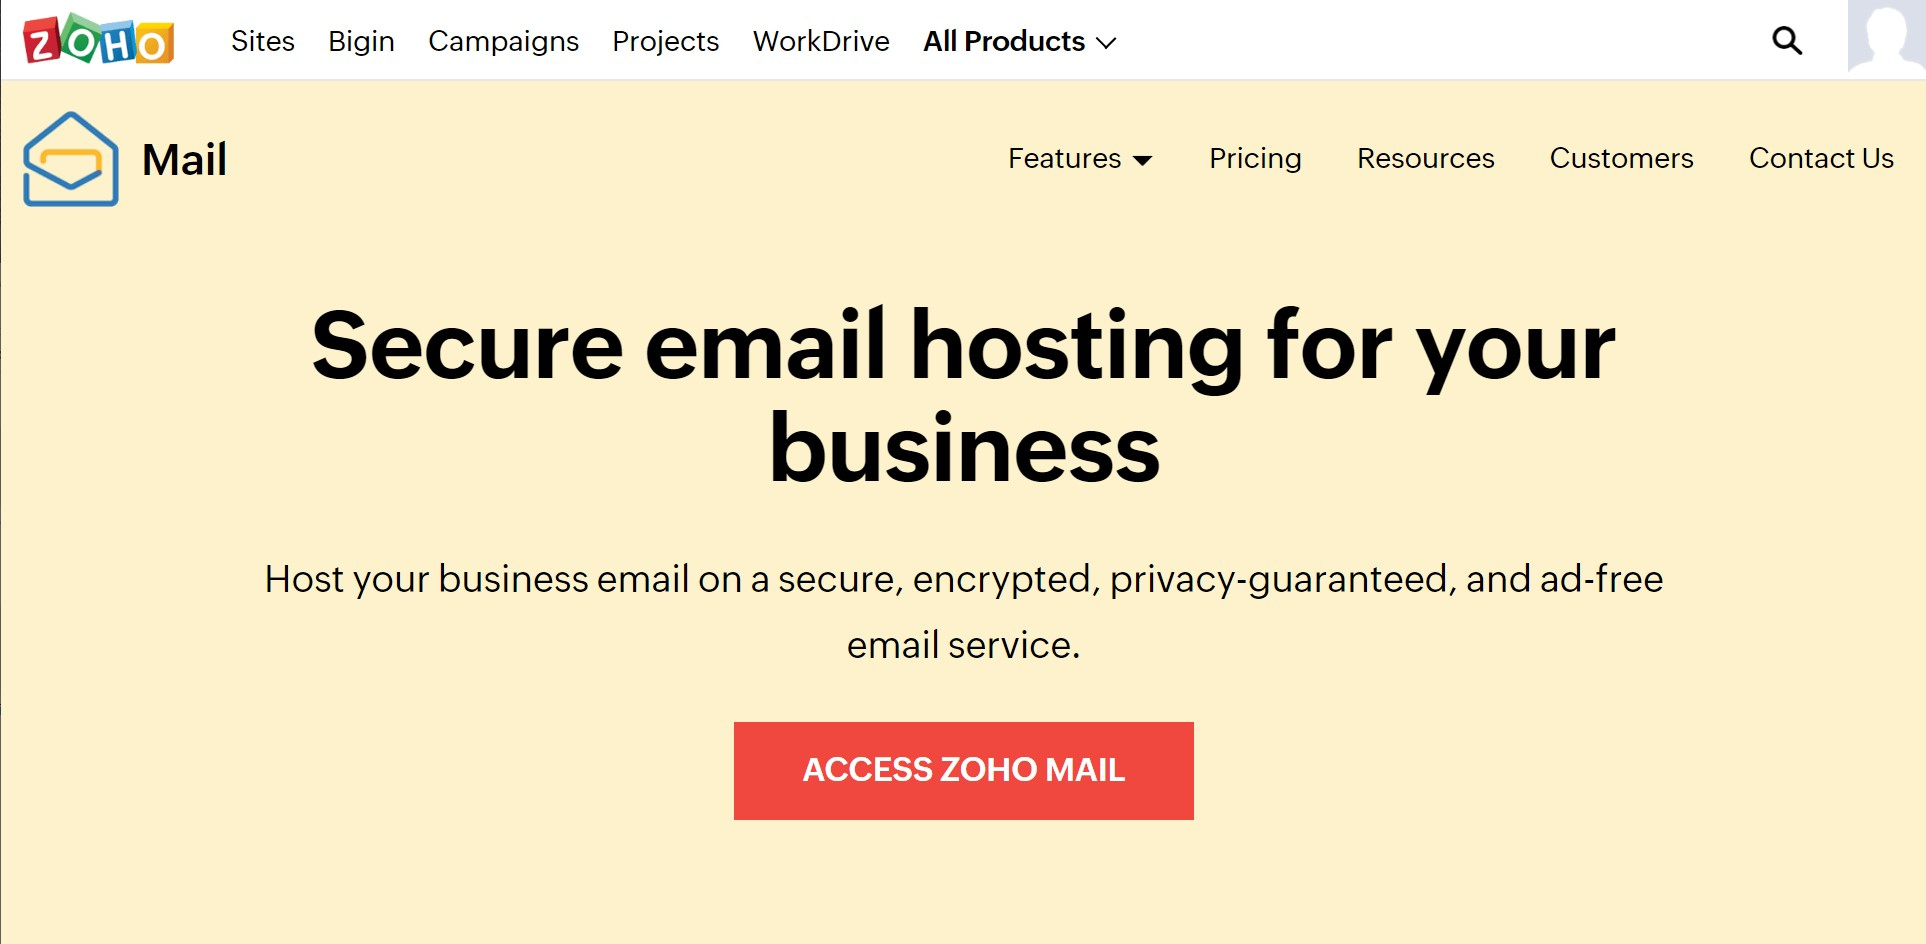 Cheap email hosting from Zoho Mail